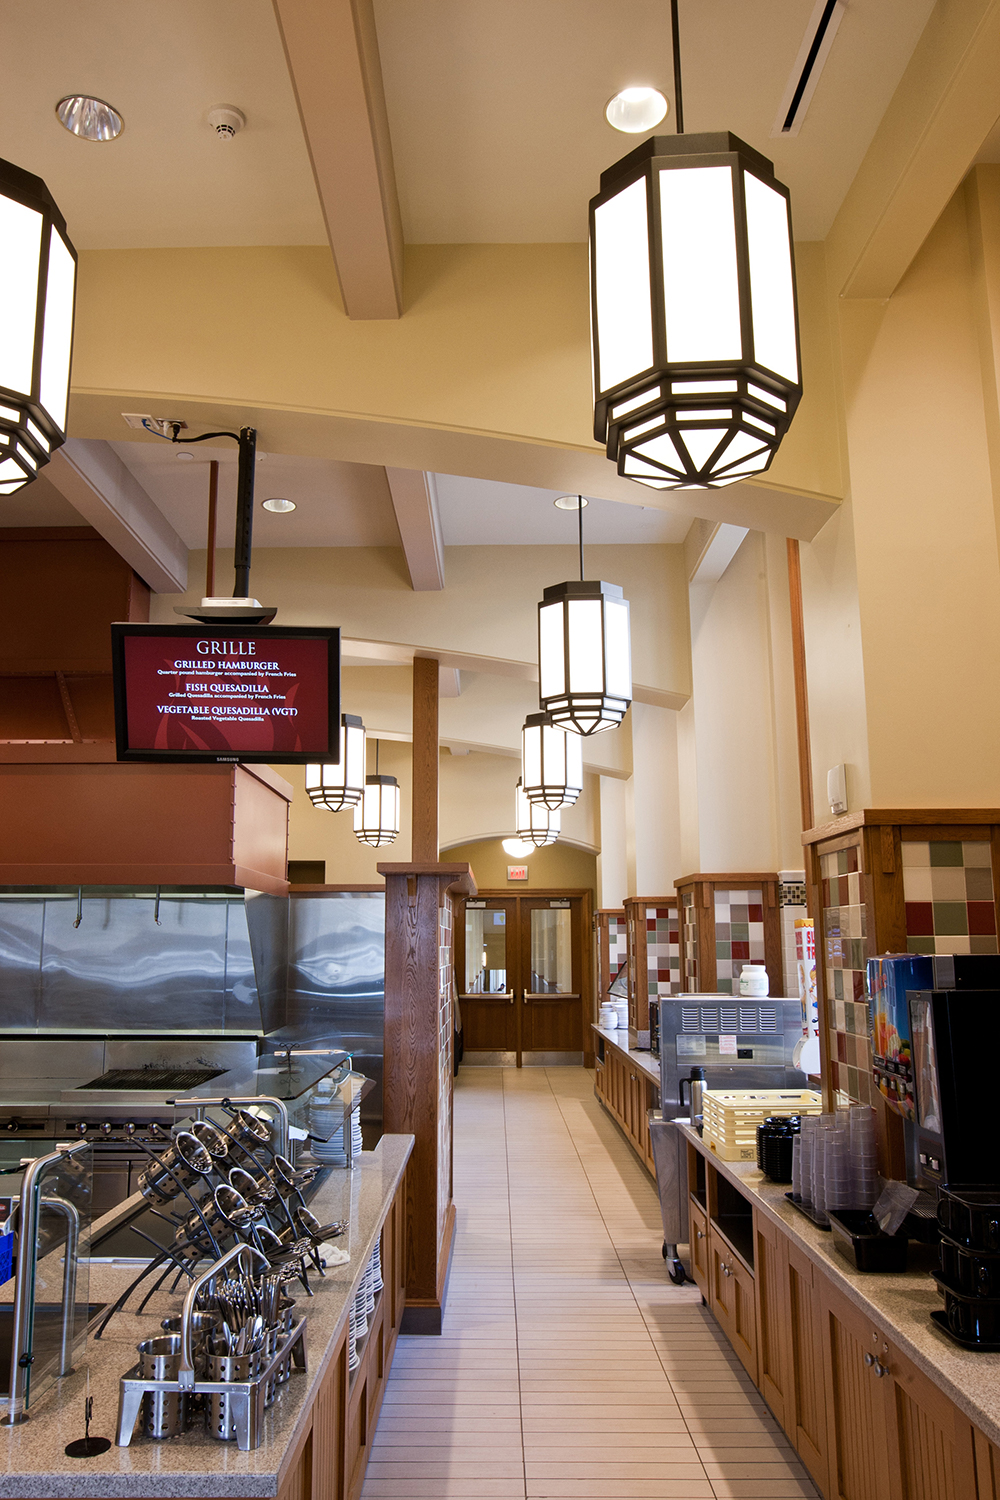 Bold, lantern-style custom light fixtures lined above a clean, classically styled campus kitchen.